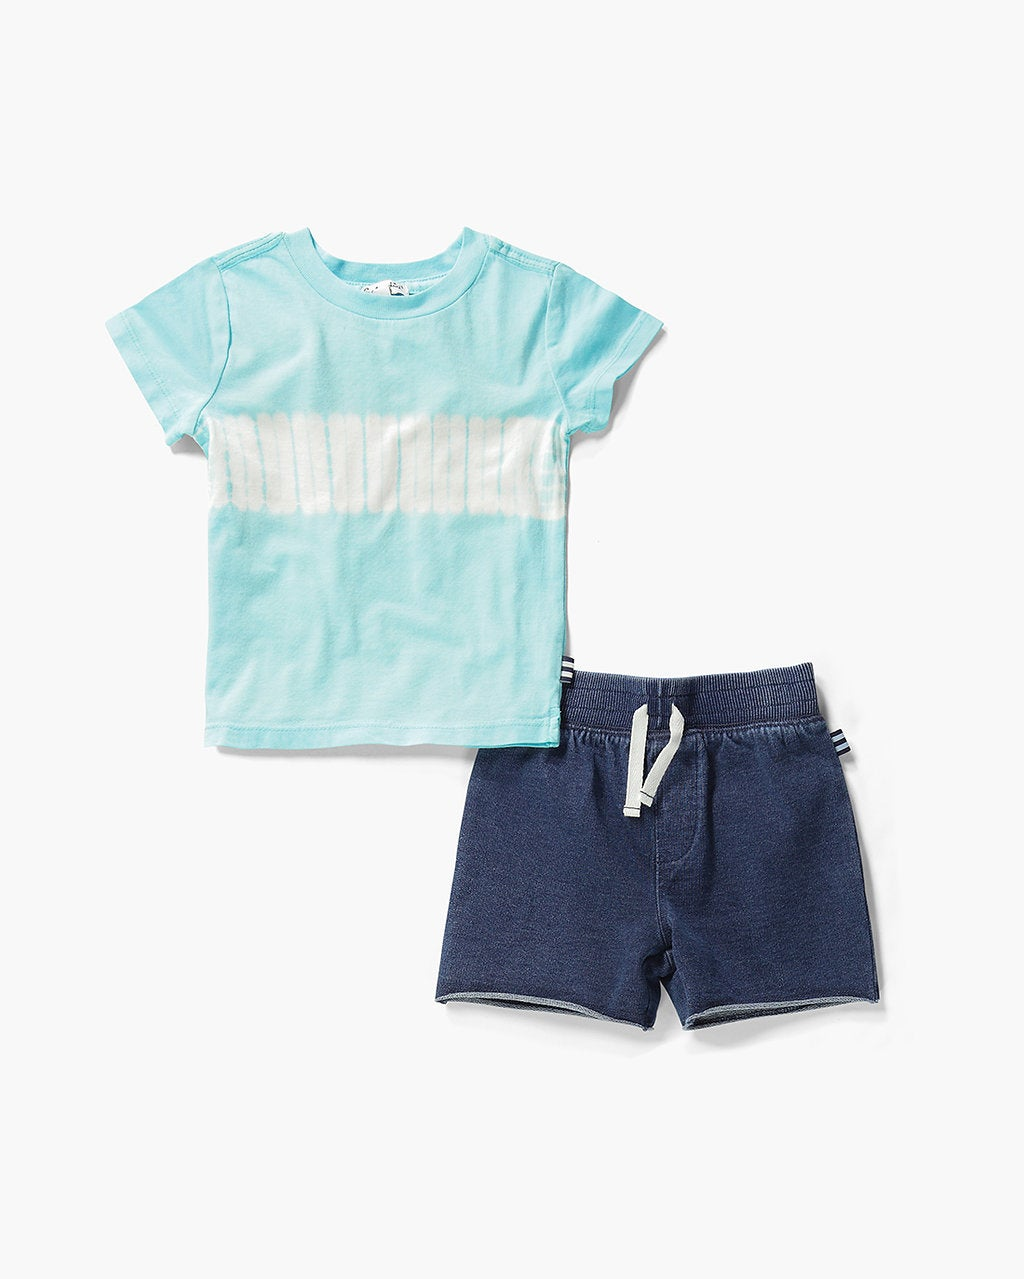 Splendid Baby Boy Tie Dye Tee Set